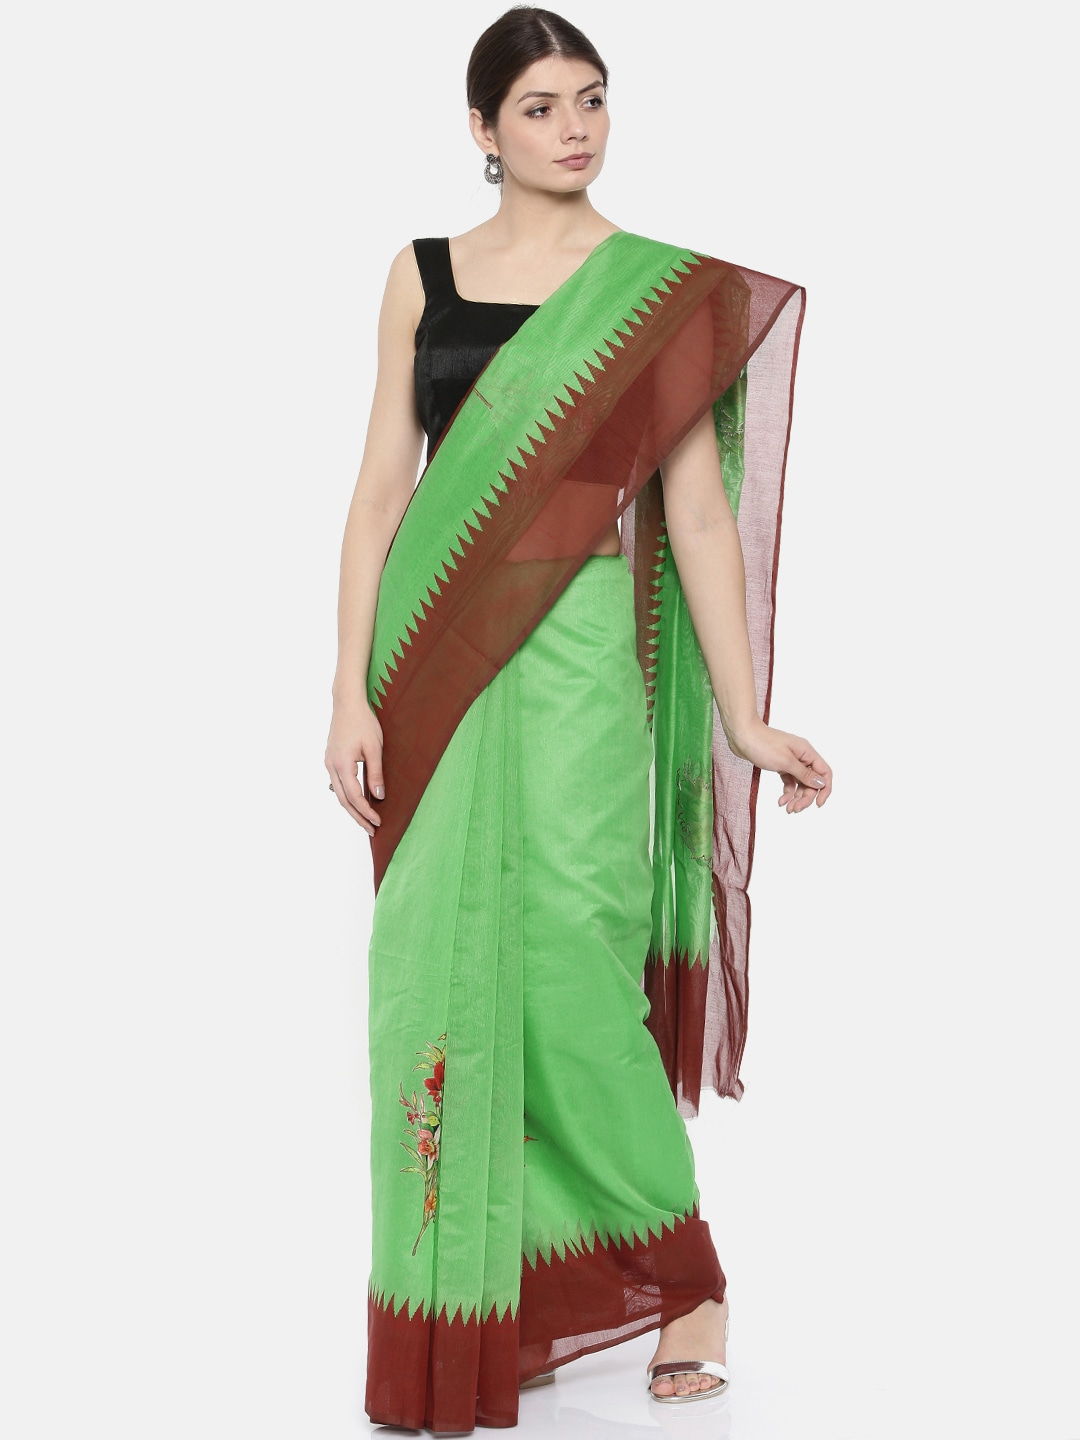 062617f2ec0d5 Chanderi Sarees - Buy Chanderi Sarees Online in India